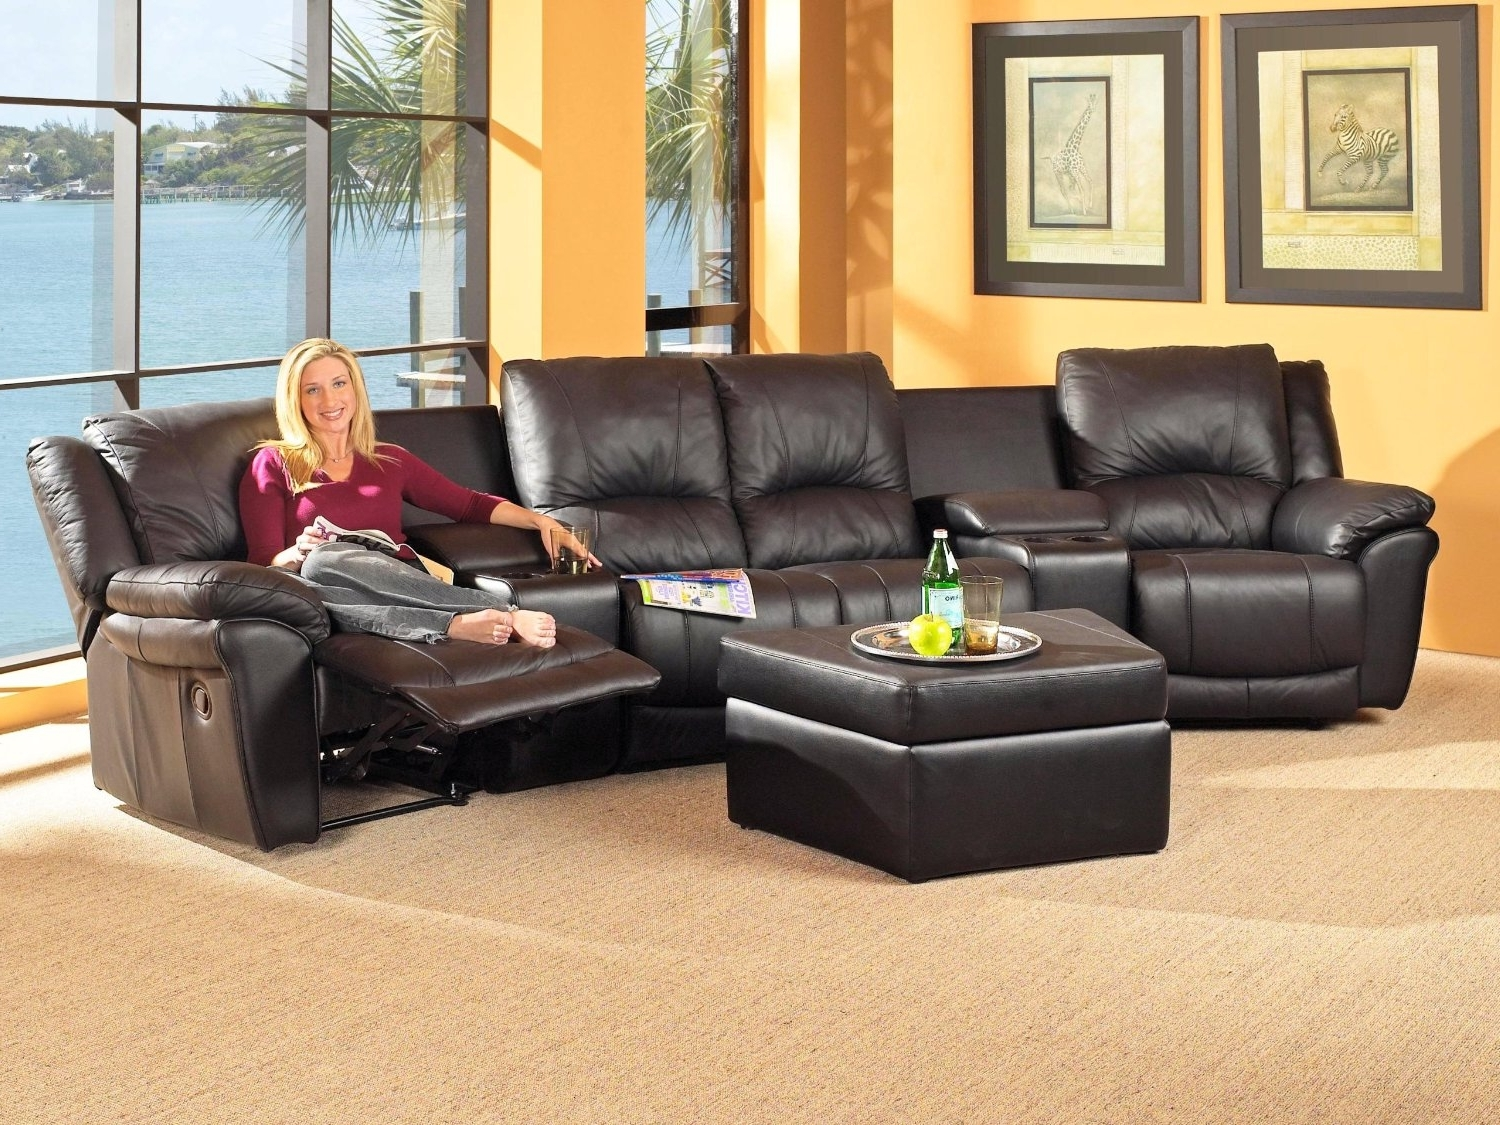 Well Liked Sectional Sofas With Recliners For Small Spaces Throughout Small Space Sectional Sofa – Decofurnish (View 3 of 15)